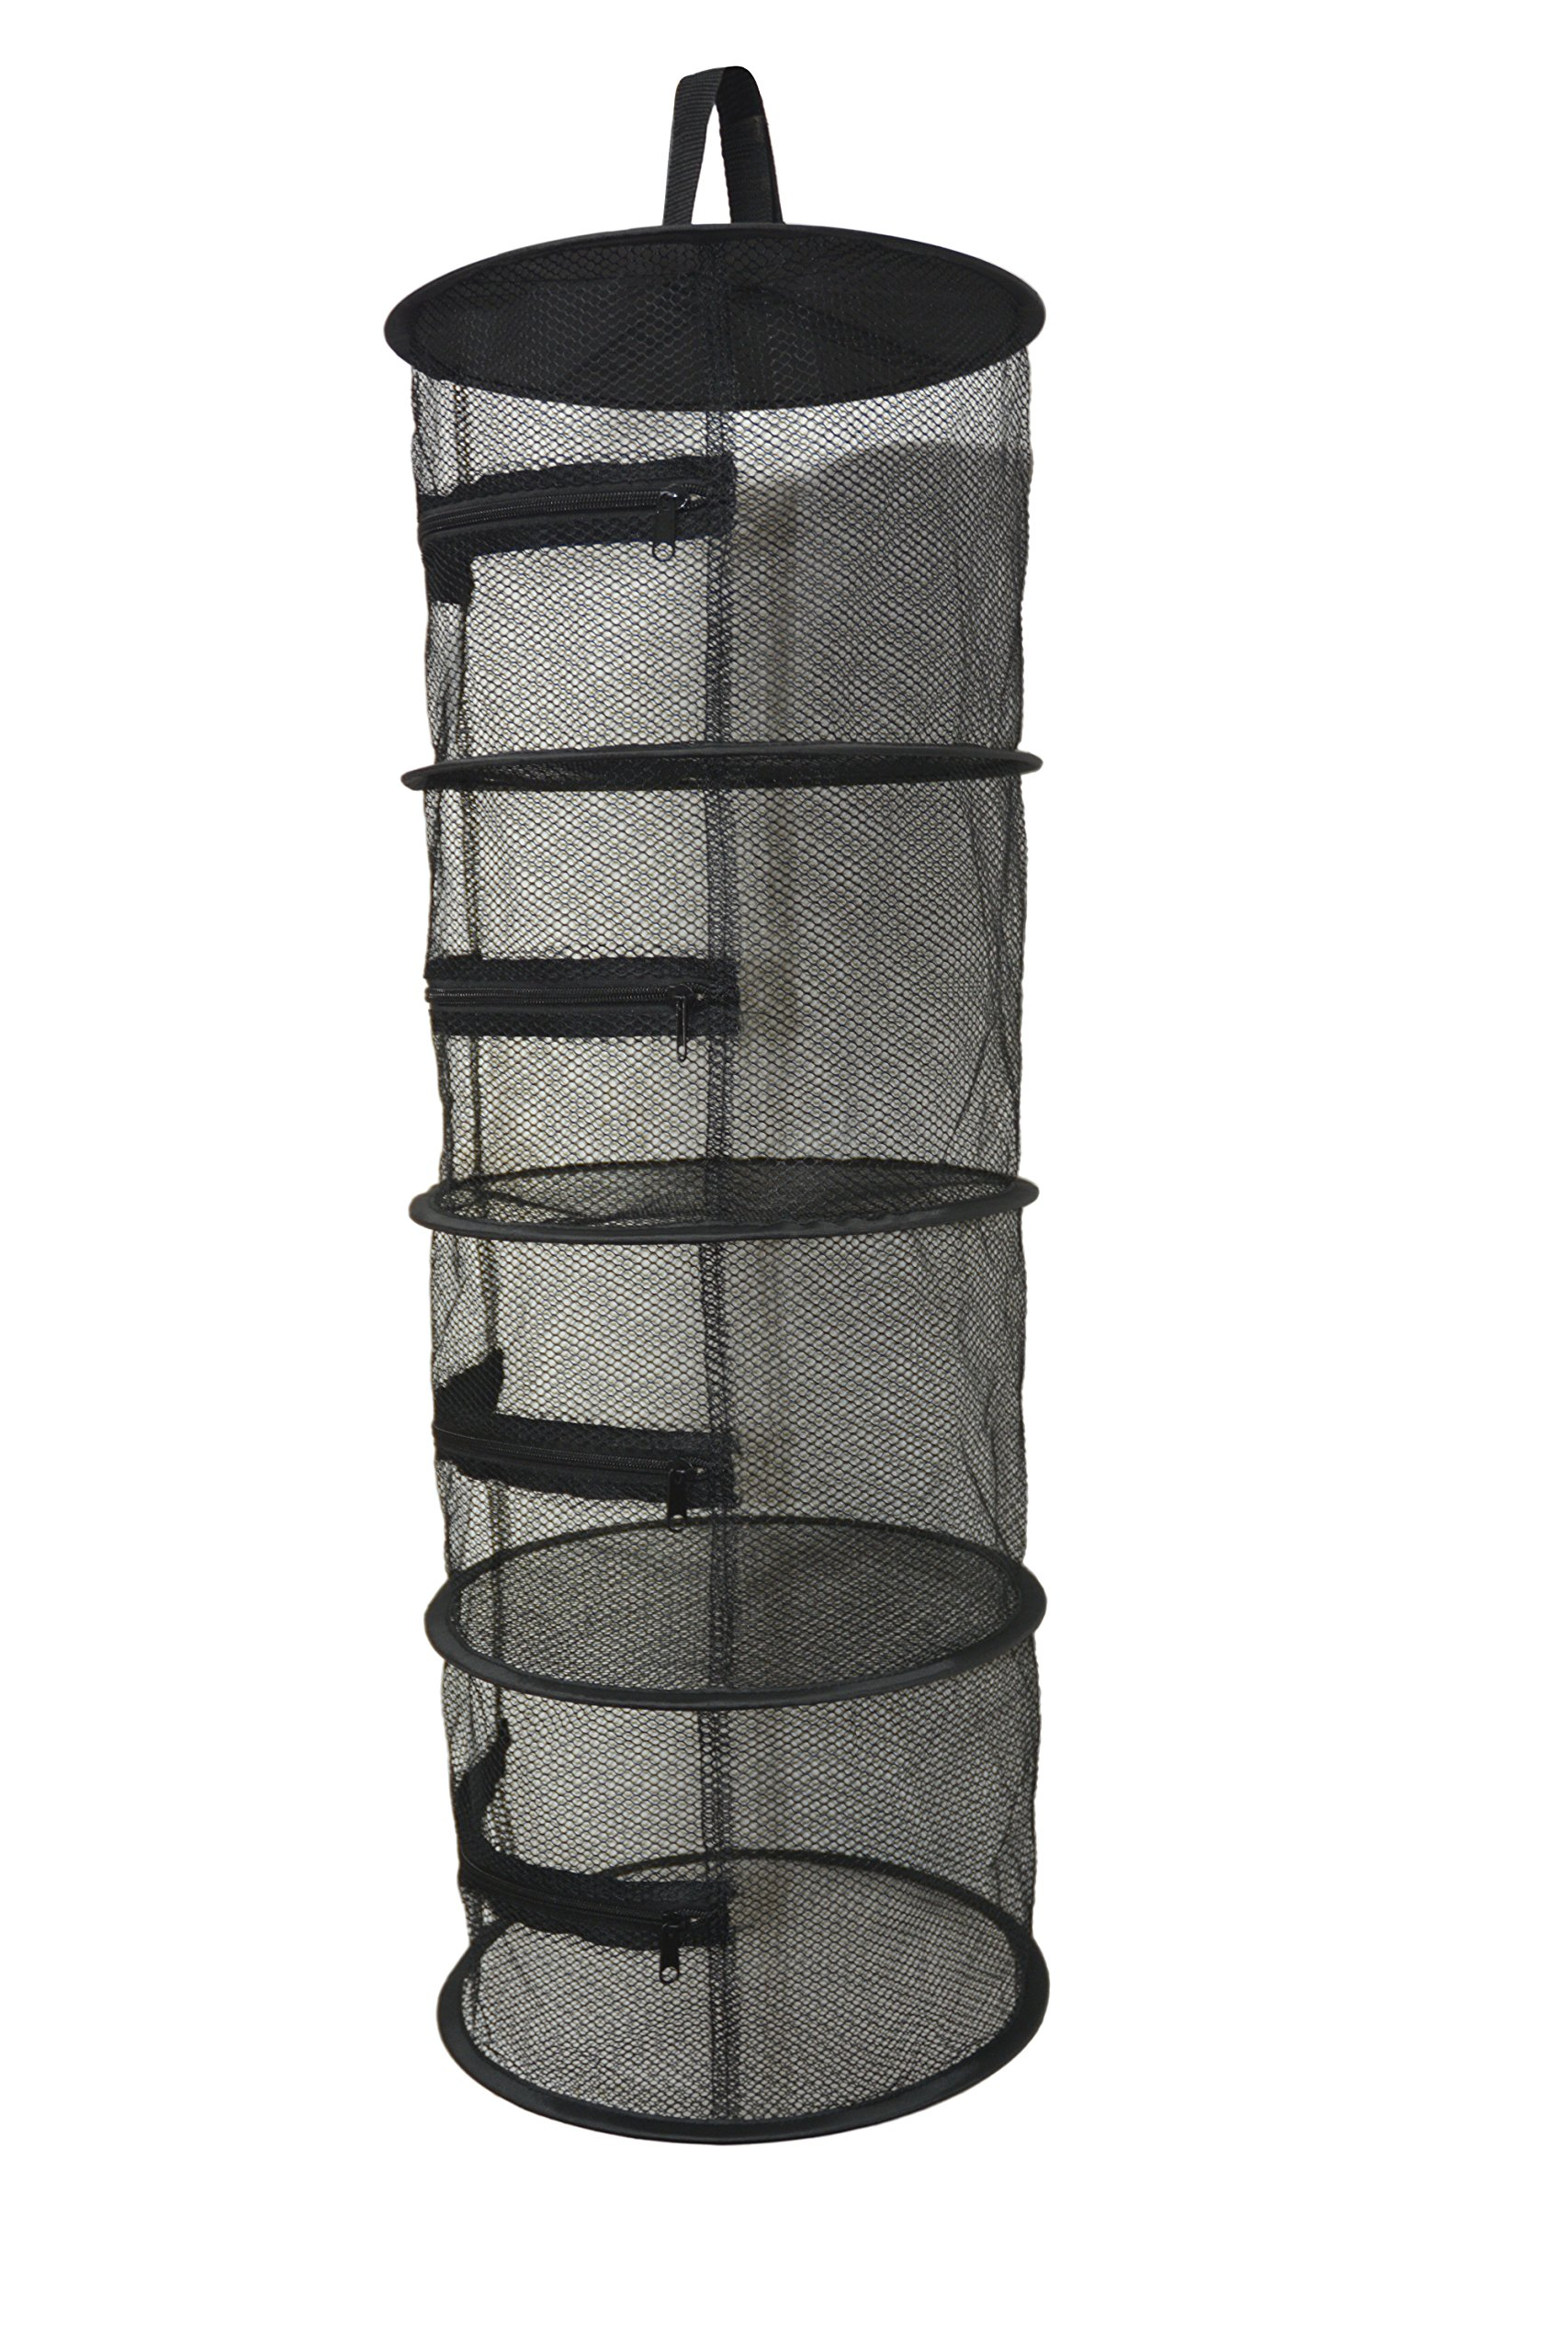 Compact 12 Inch Diameter 4 Layer Mini Hanging Herb Drying Rack - Black Dry Net Mesh Screen with Zippers for Indoor and Outdoor Use - Ideal for Closets and Grow Tents